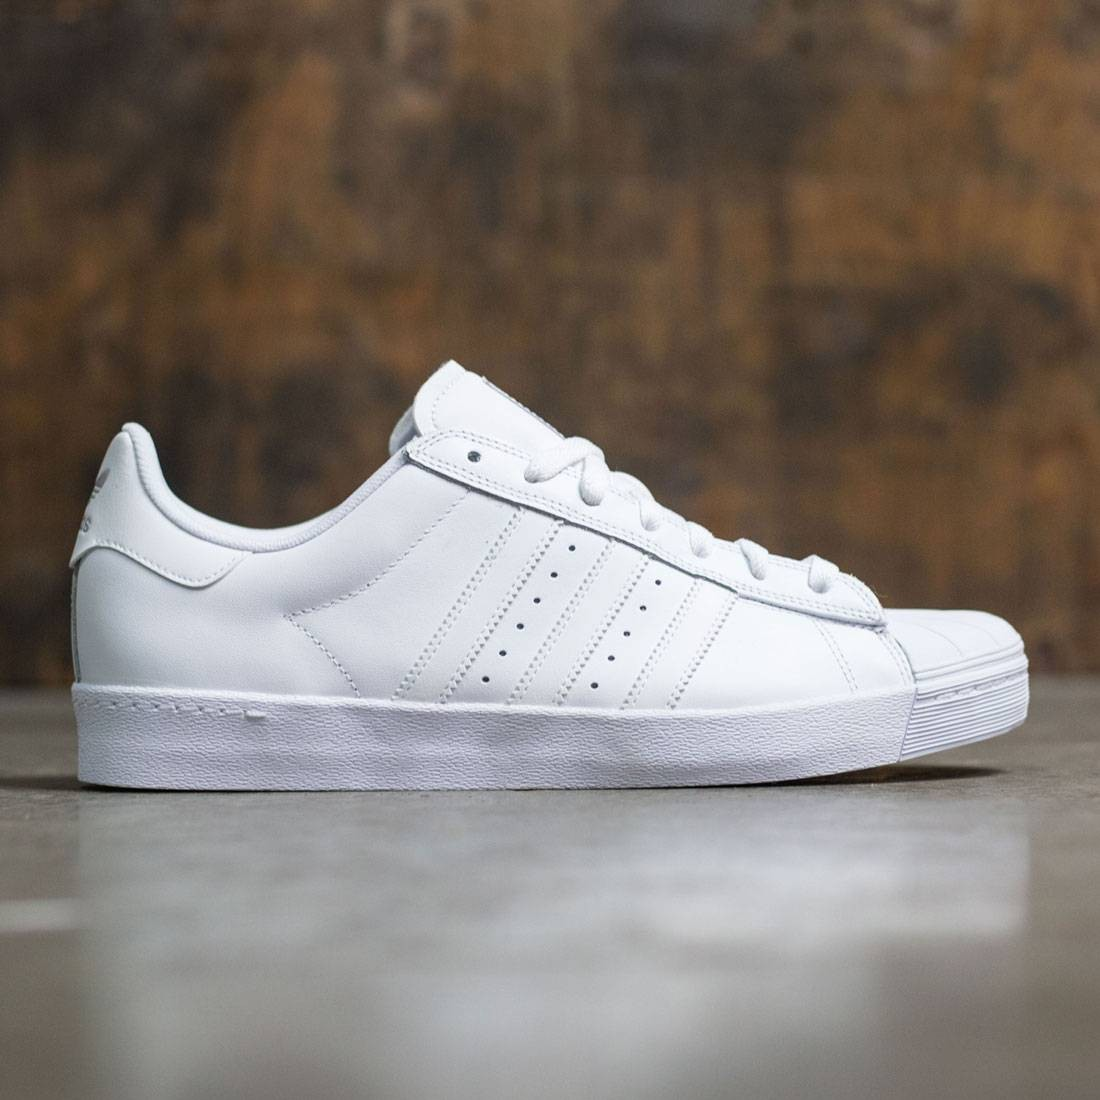 Superstar Men Footwear White Advwhite Metallic Silver Adidas Vulc 1T3KlF5uJc